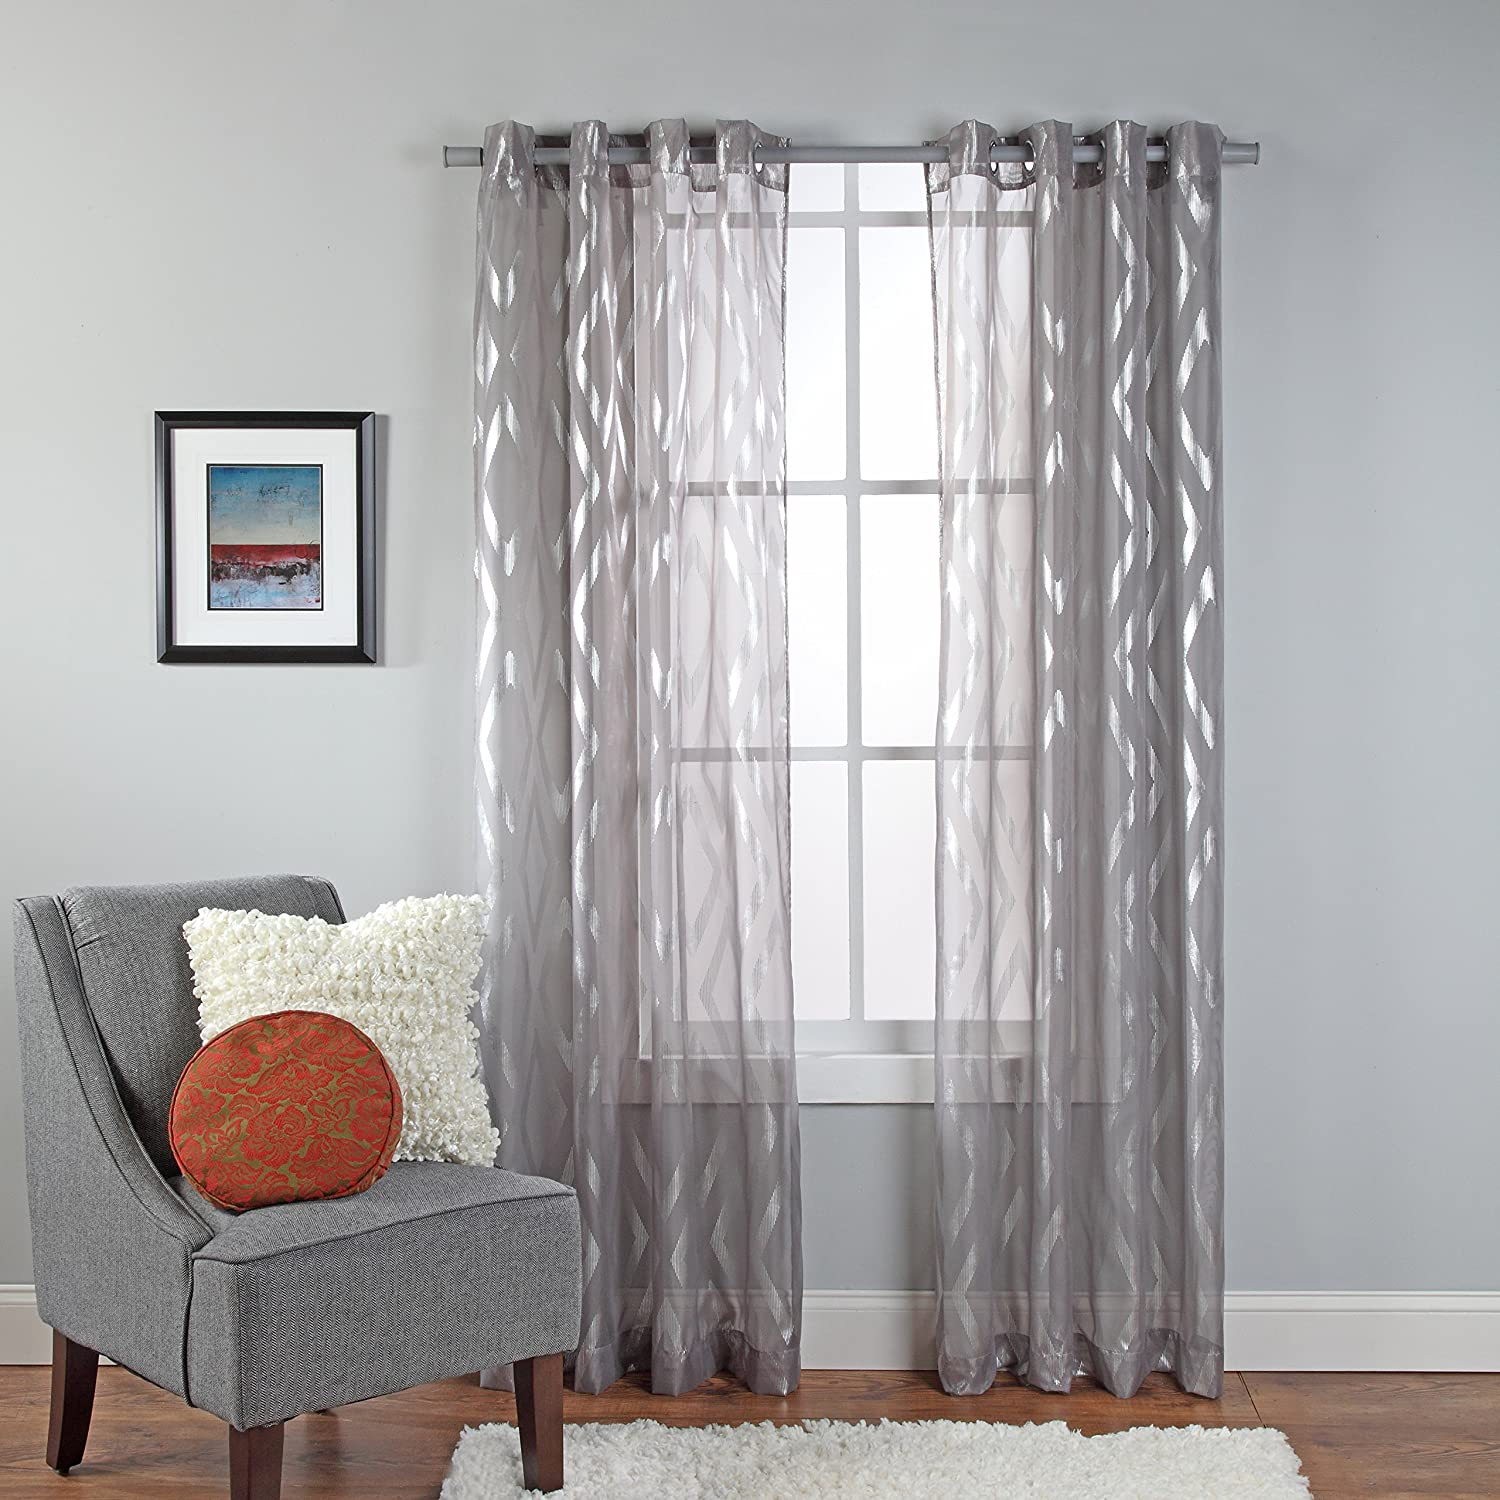 room gray of living curtains white marvelous concept dark and pic tfile ideas grommet grey sheer